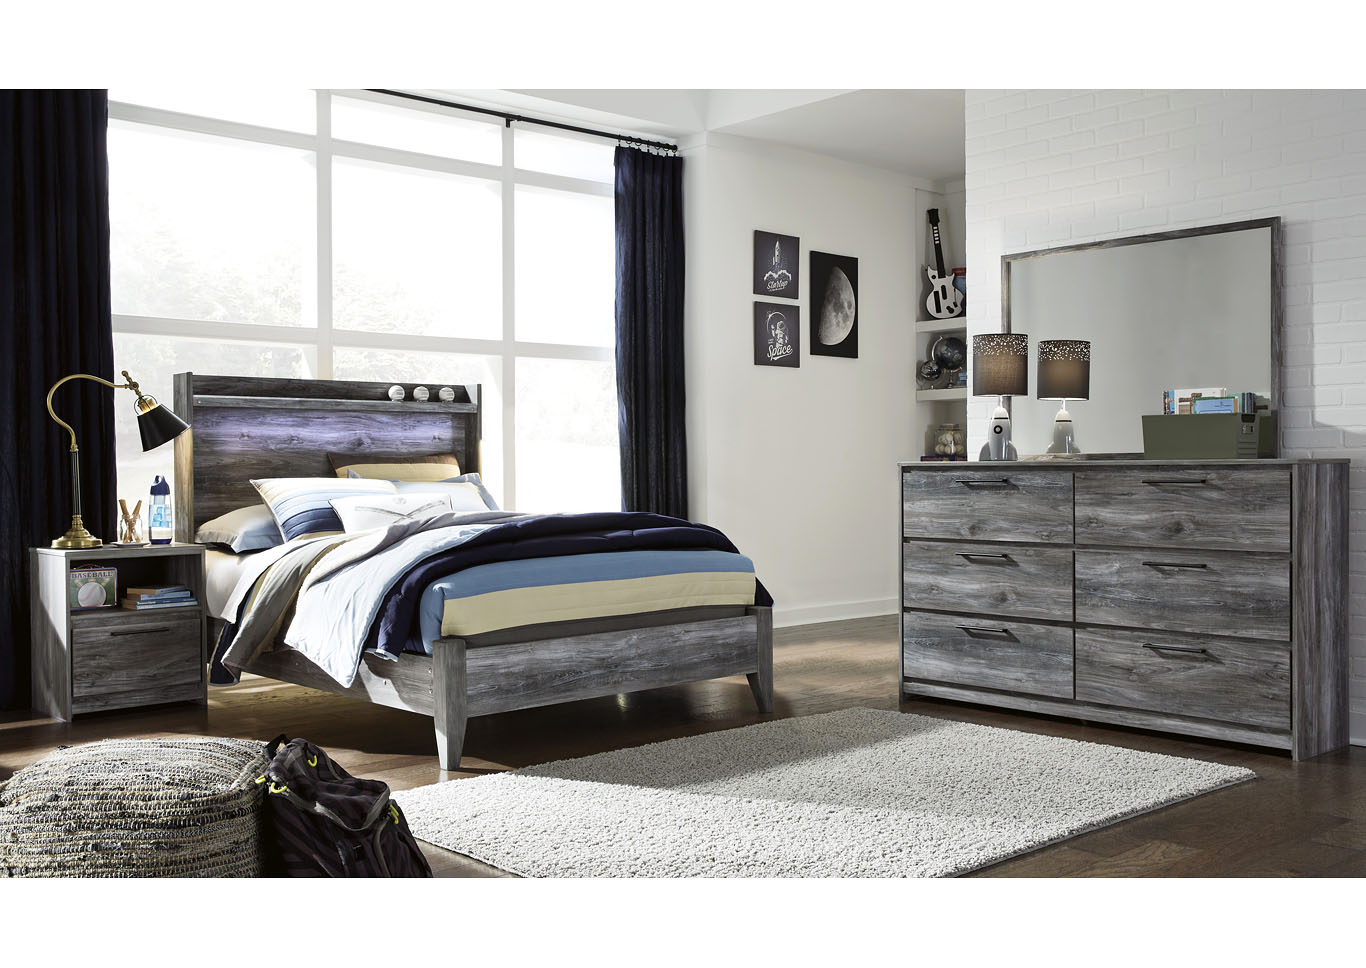 Baystorm Full Panel Bed w/Dresser and Mirror